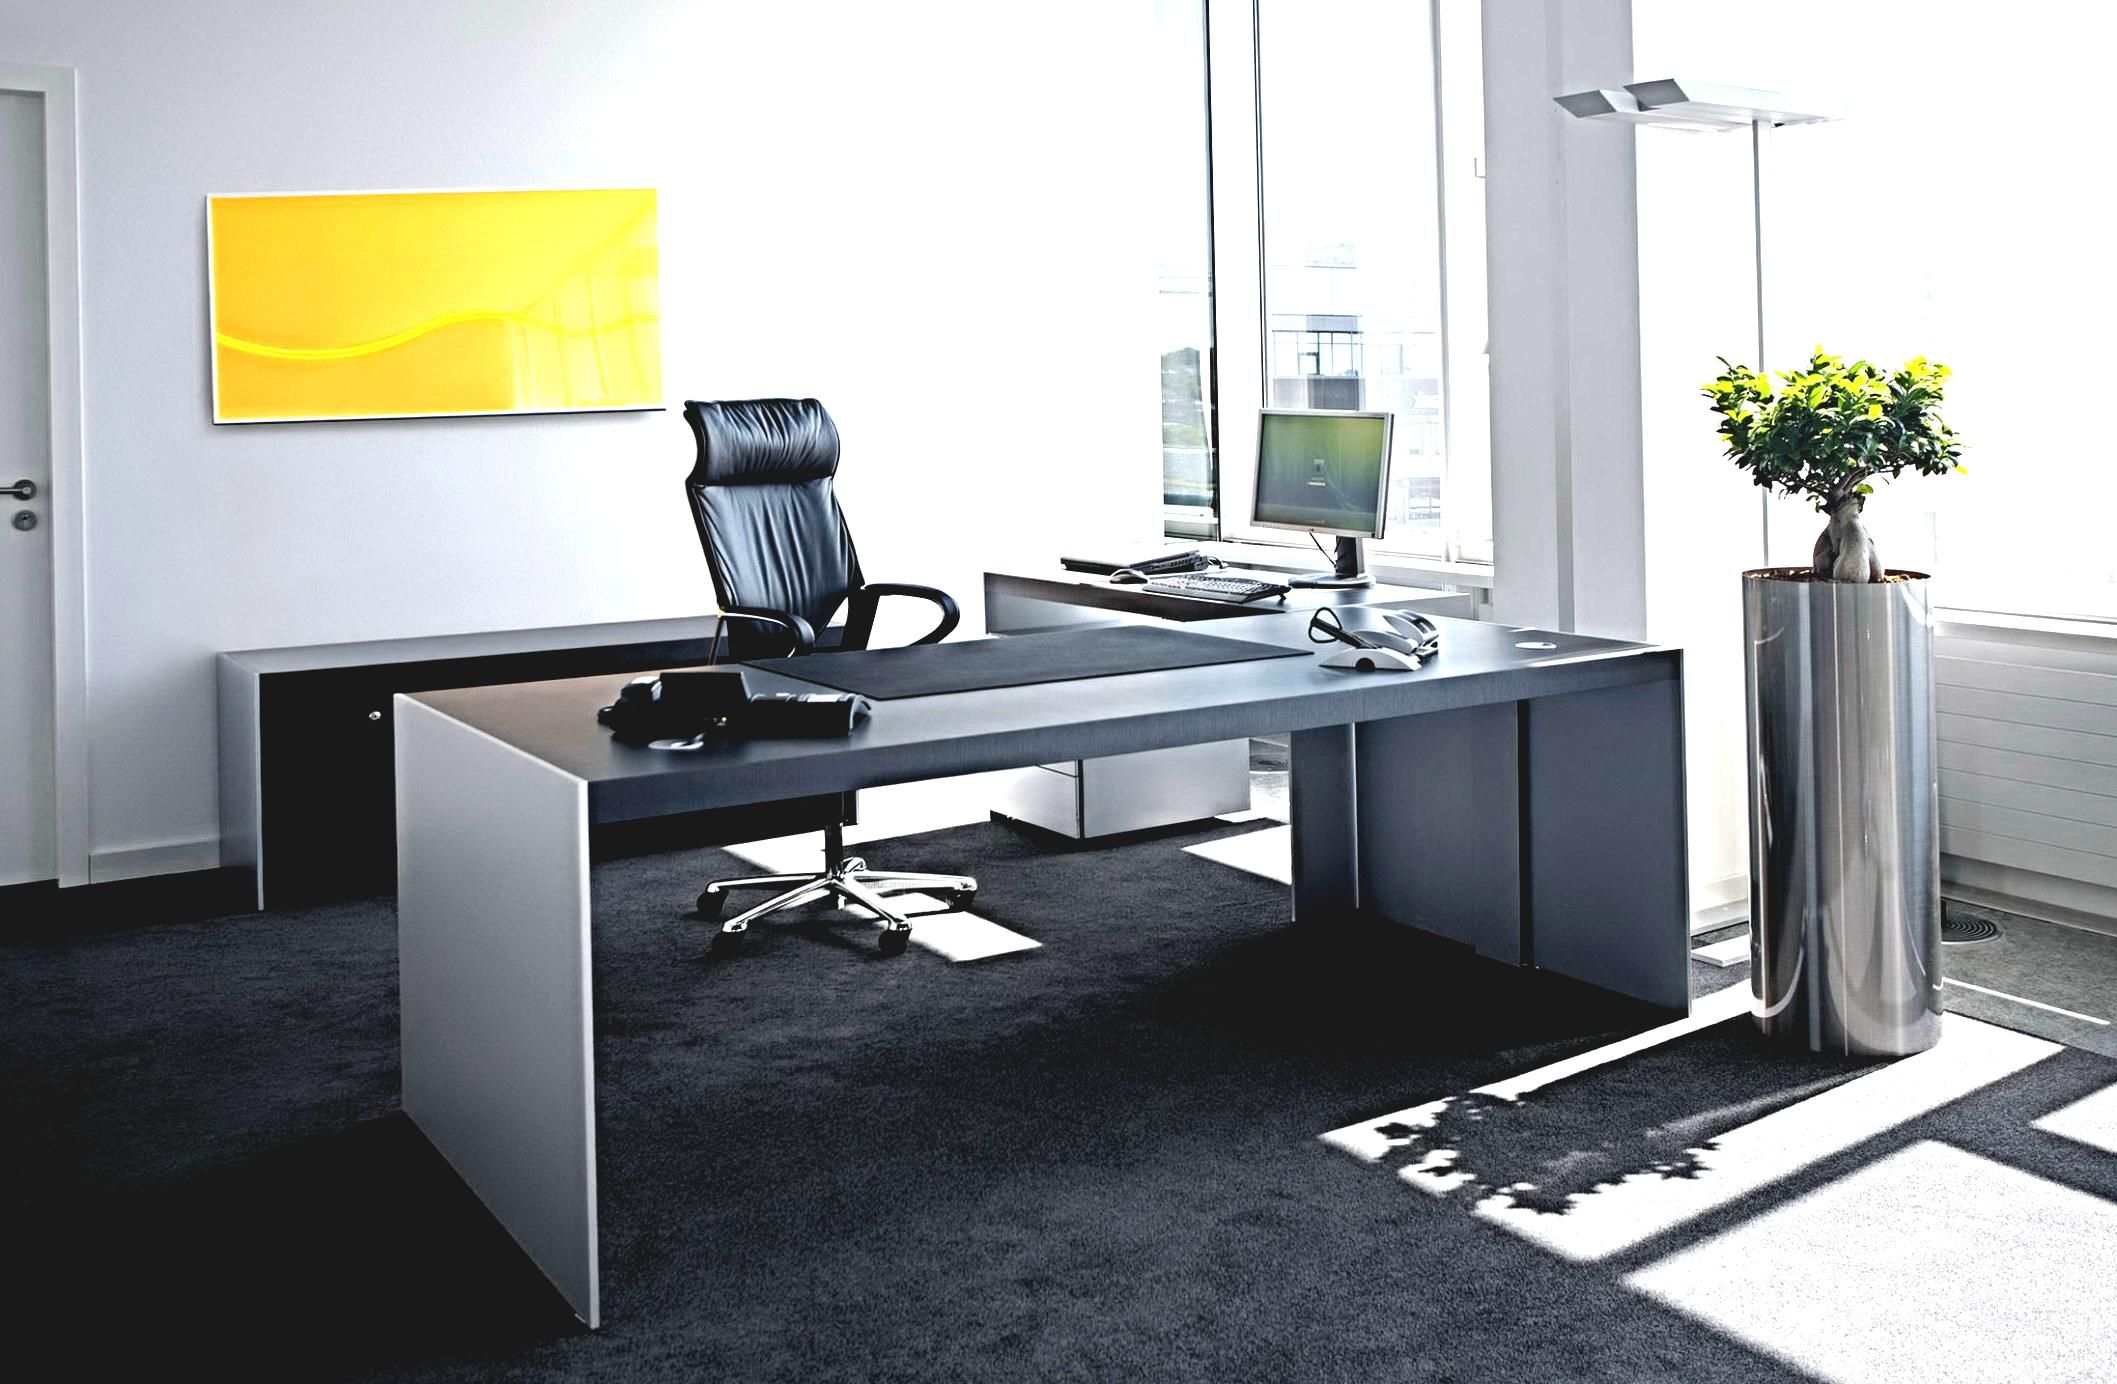 Design Minimalist Modern Home Office Furniture Home Business Office Desk And Office Chairs Modern Home Office Furniture Office Desk For Sale Small Home Offices